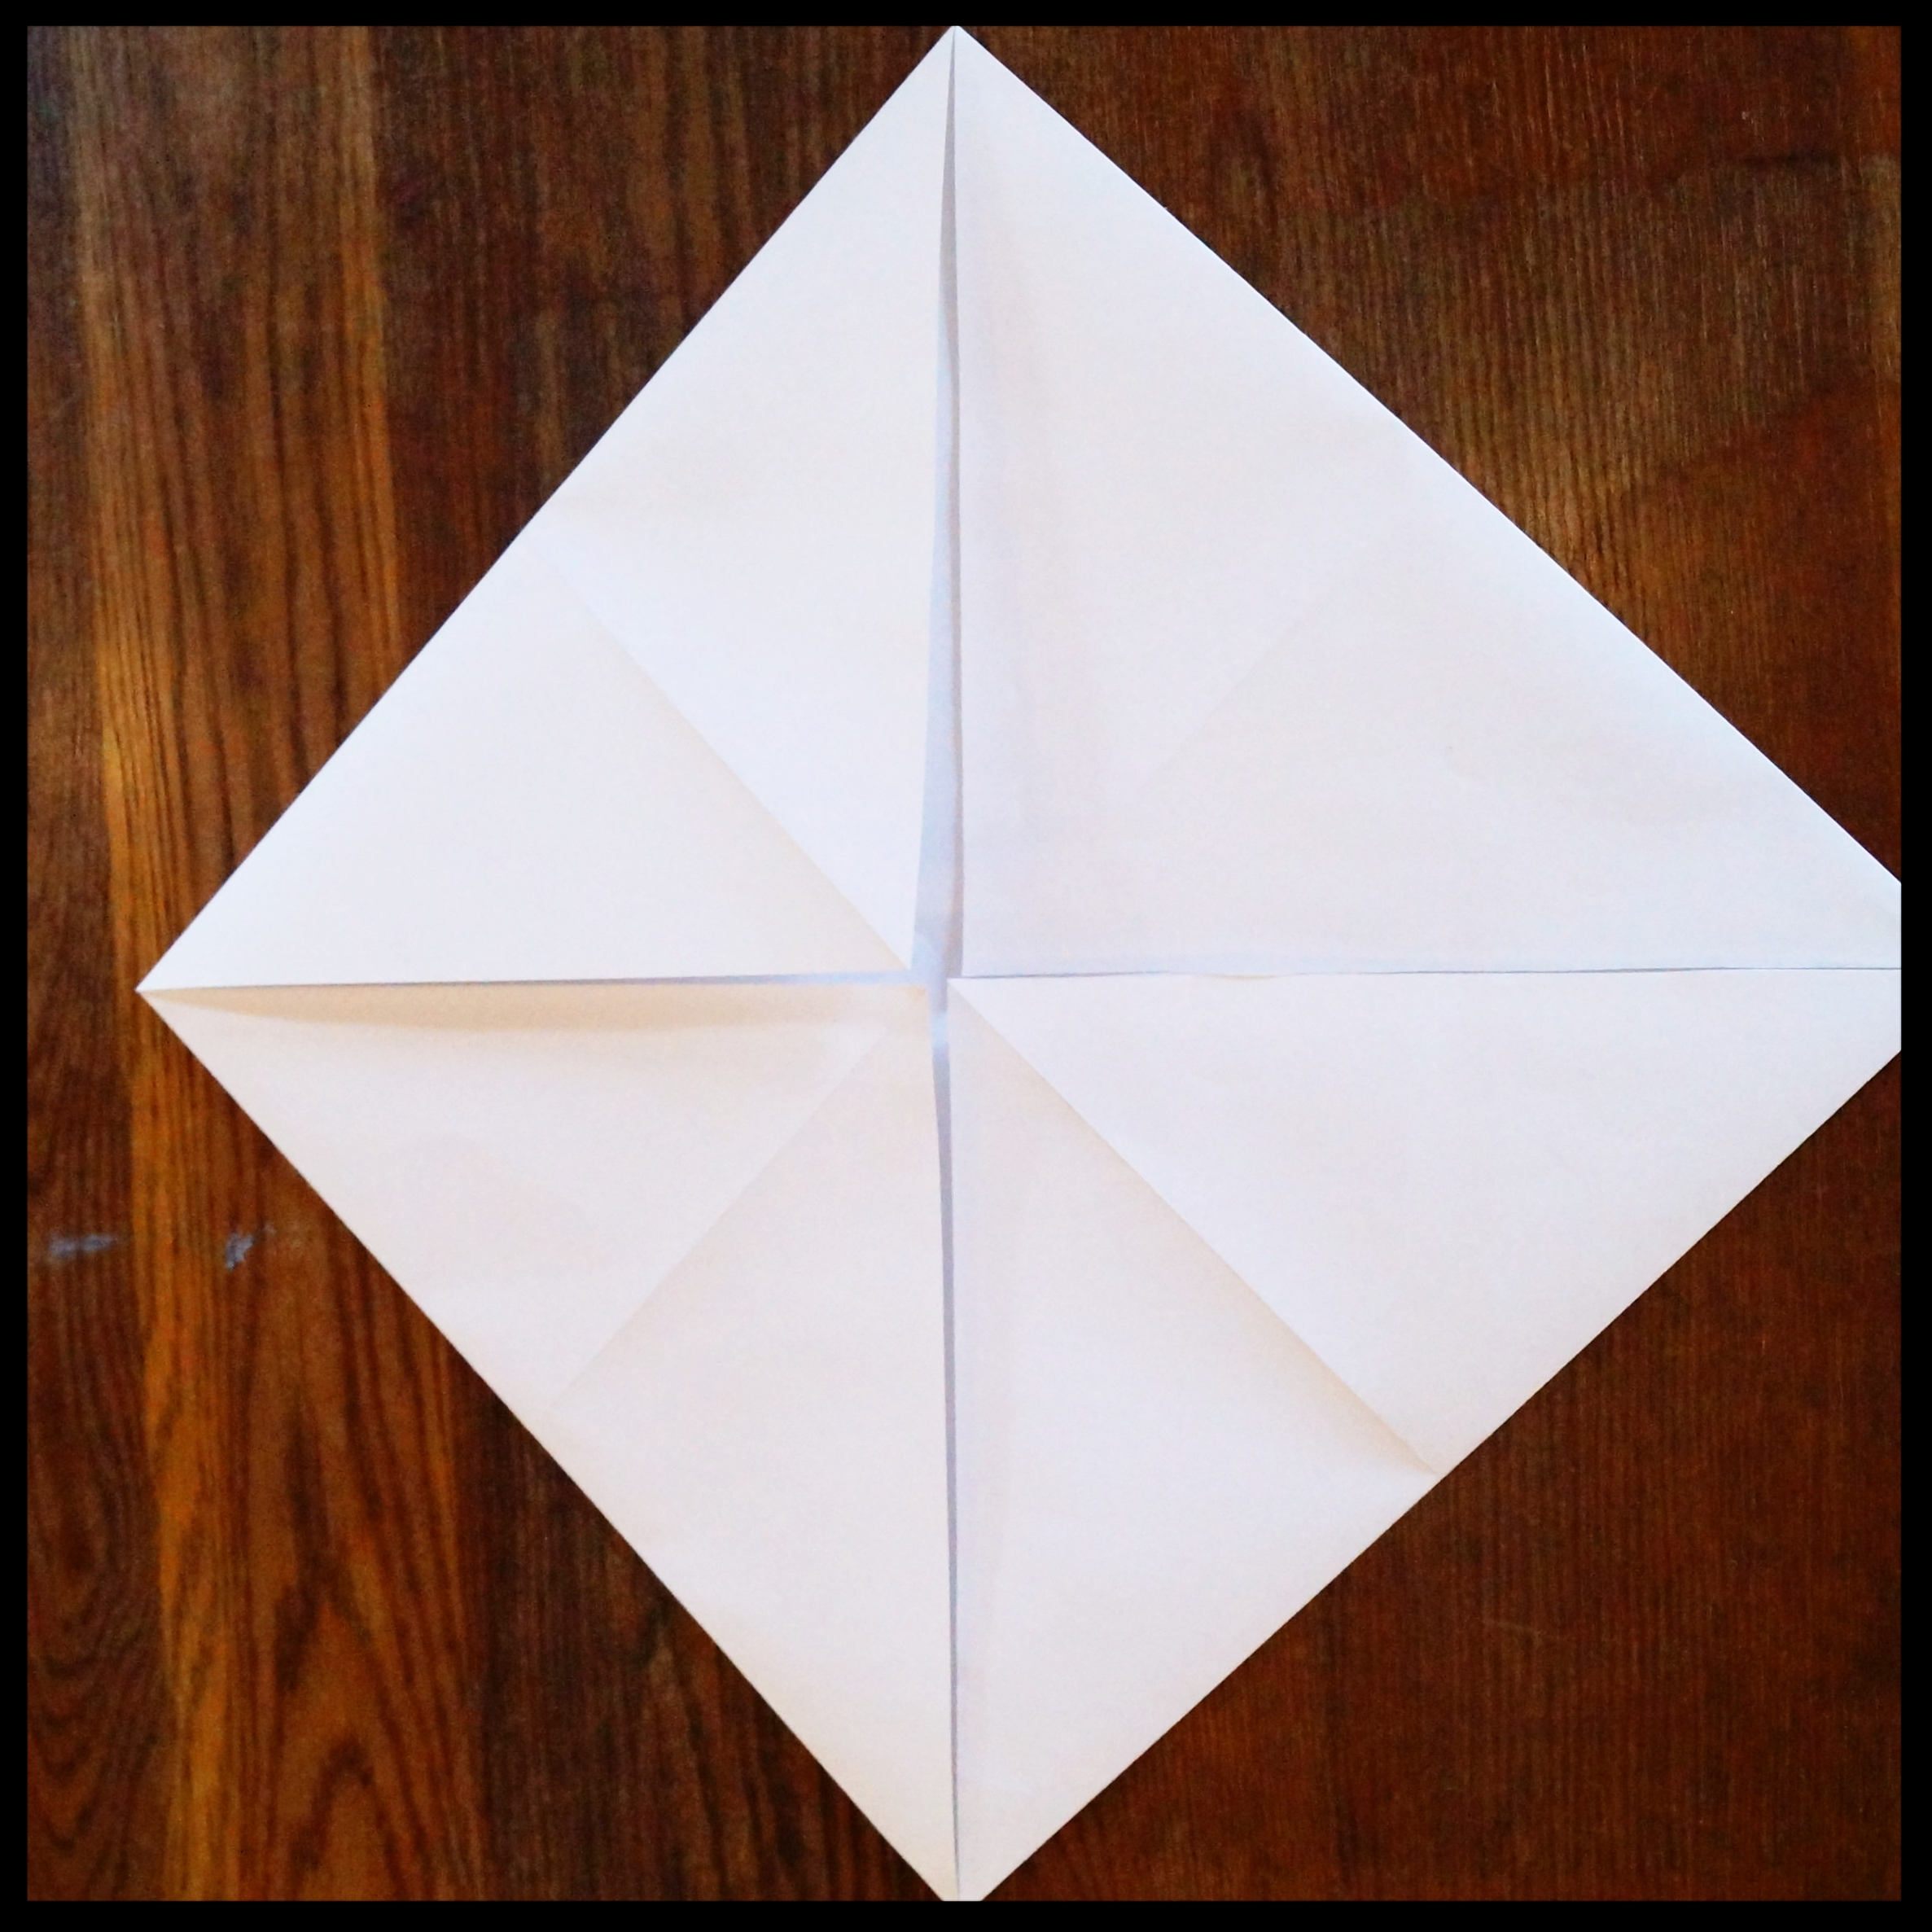 1b. With the paper unfolded back into a square, fold each corner into the center. Do not unfold these.